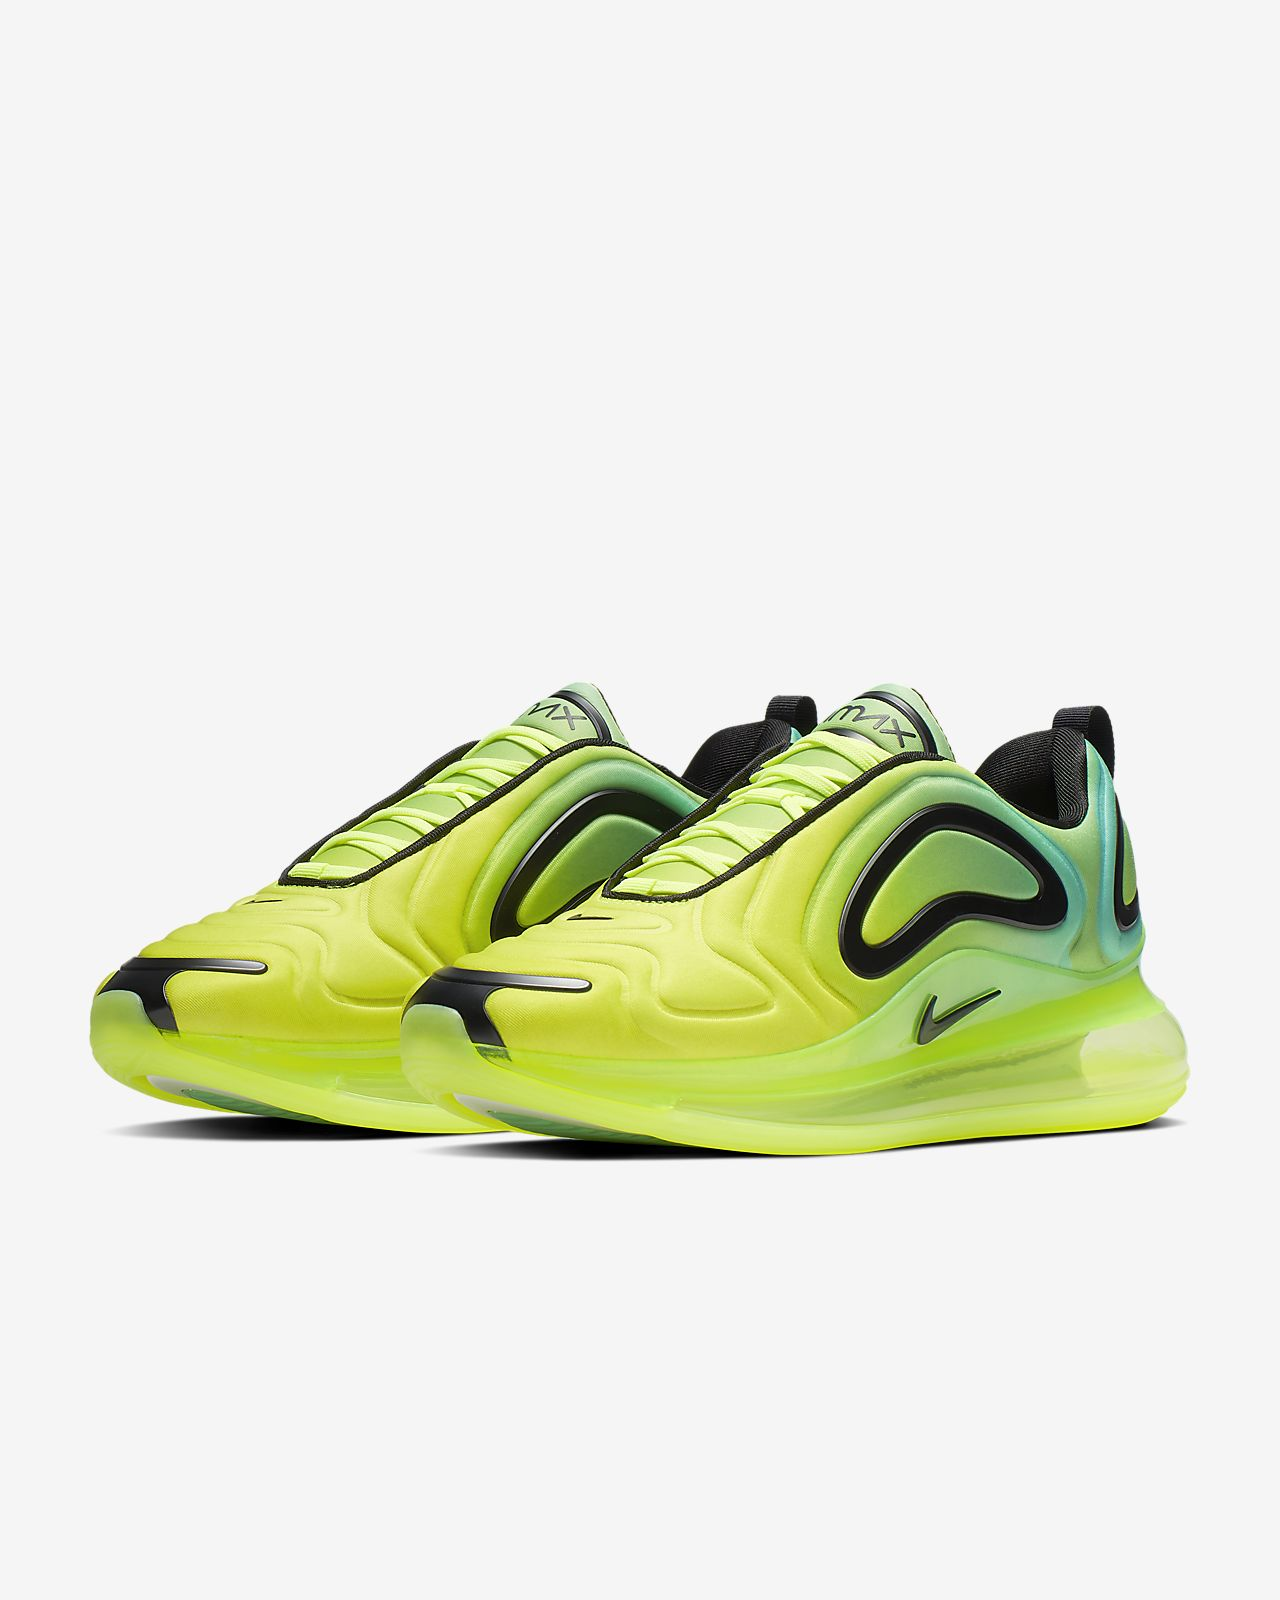 0f63b80393 Low Resolution Nike Air Max 720 Men's Shoe Nike Air Max 720 Men's Shoe